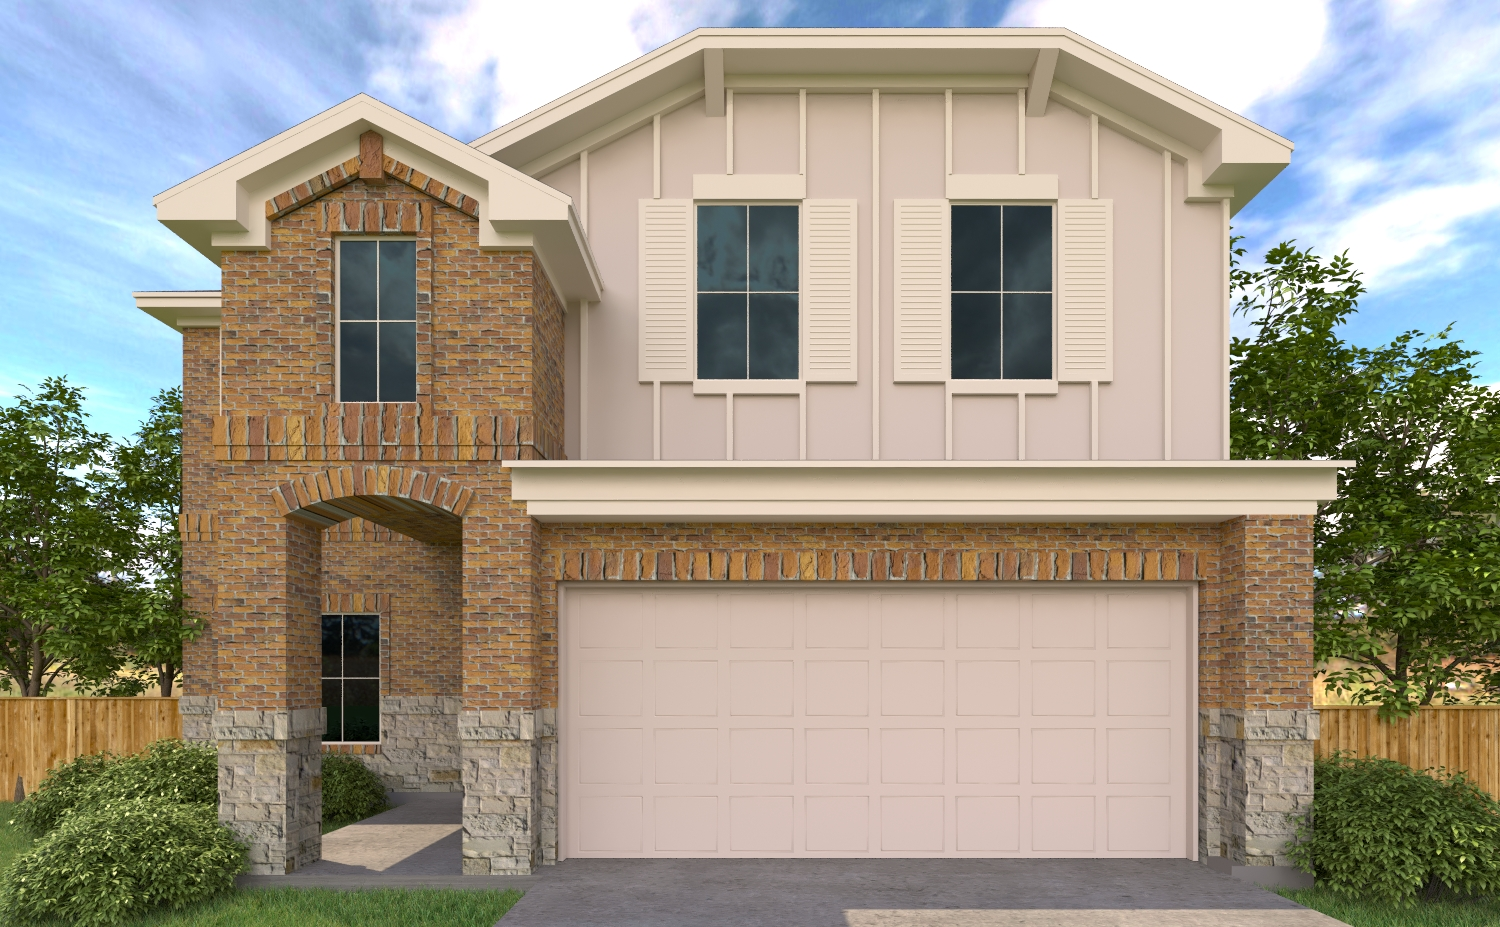 Bridgewater Meadows - From the $170's - Located in Katy, with easy access to Mason Road, I-10 and the Grand Parkway.